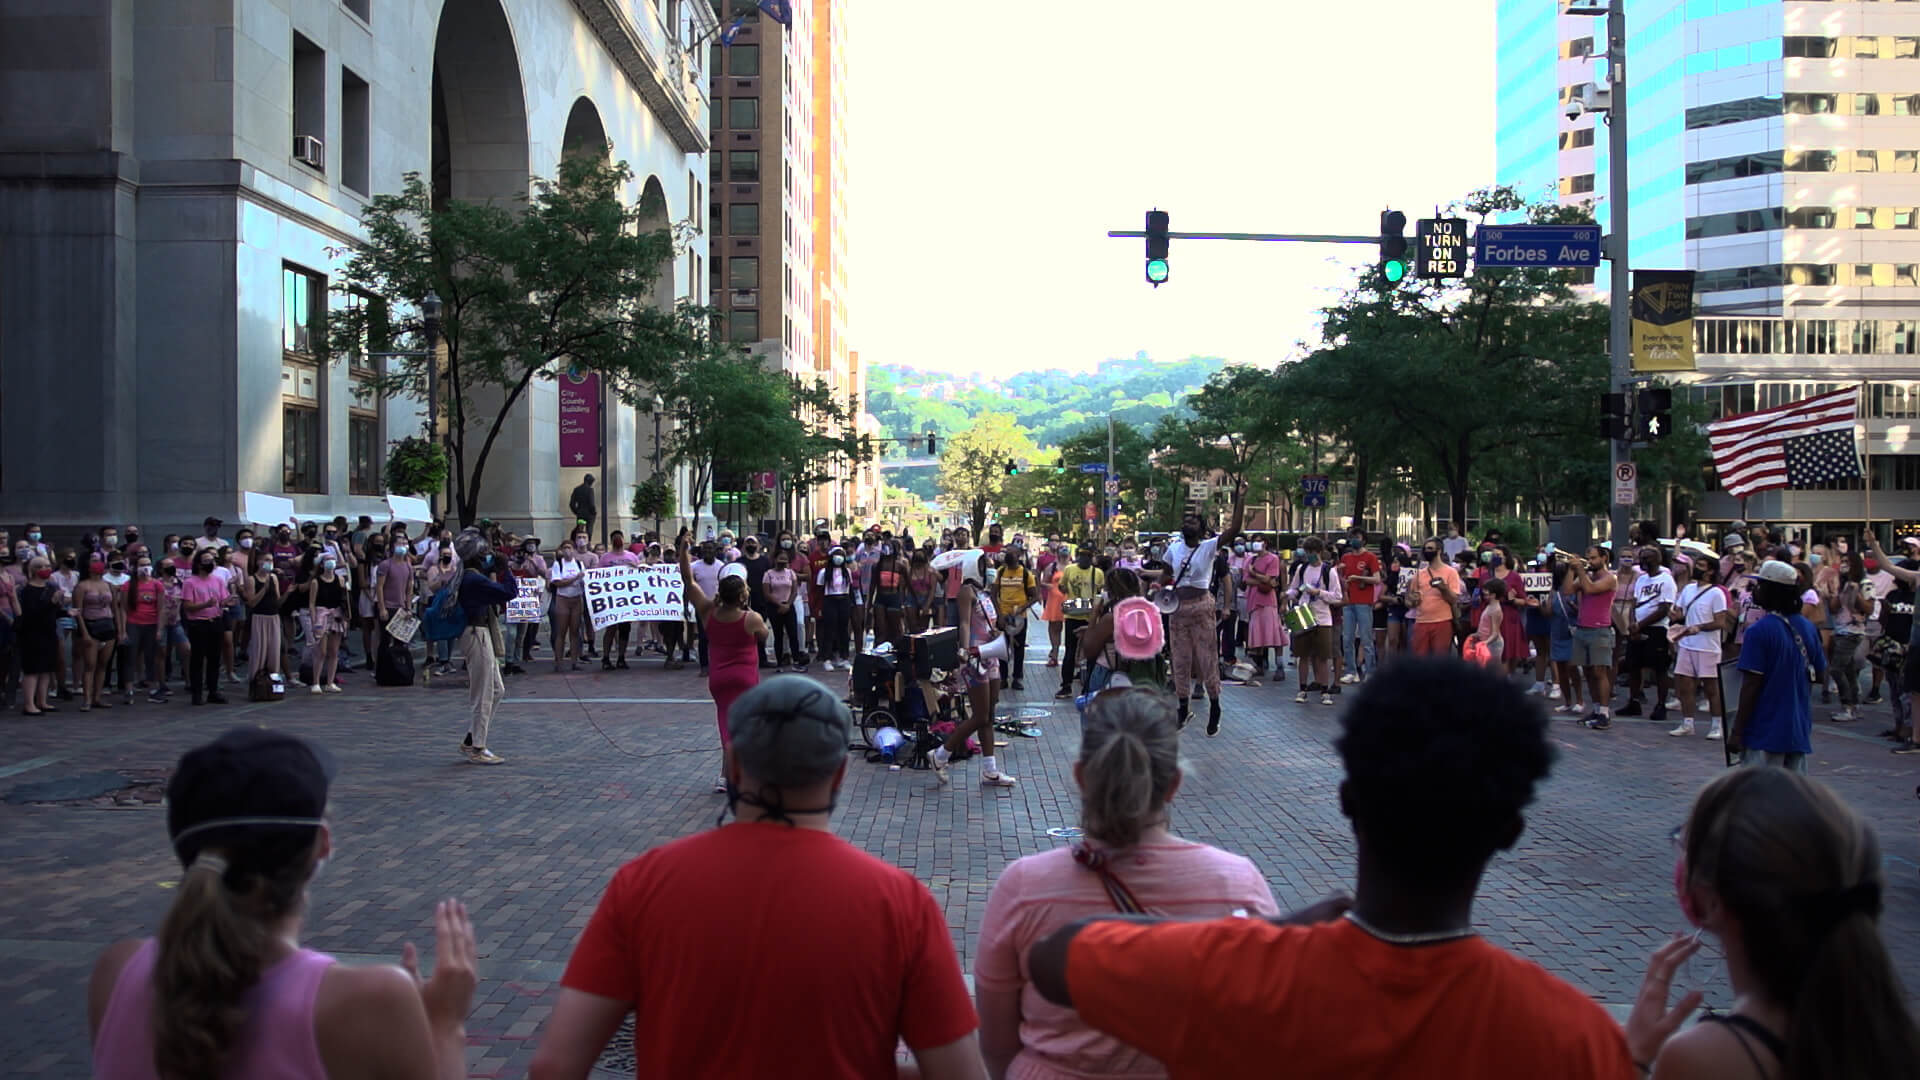 Protesters gather outside the City-County Building in downtown Pittsburgh, many dressed in pink.